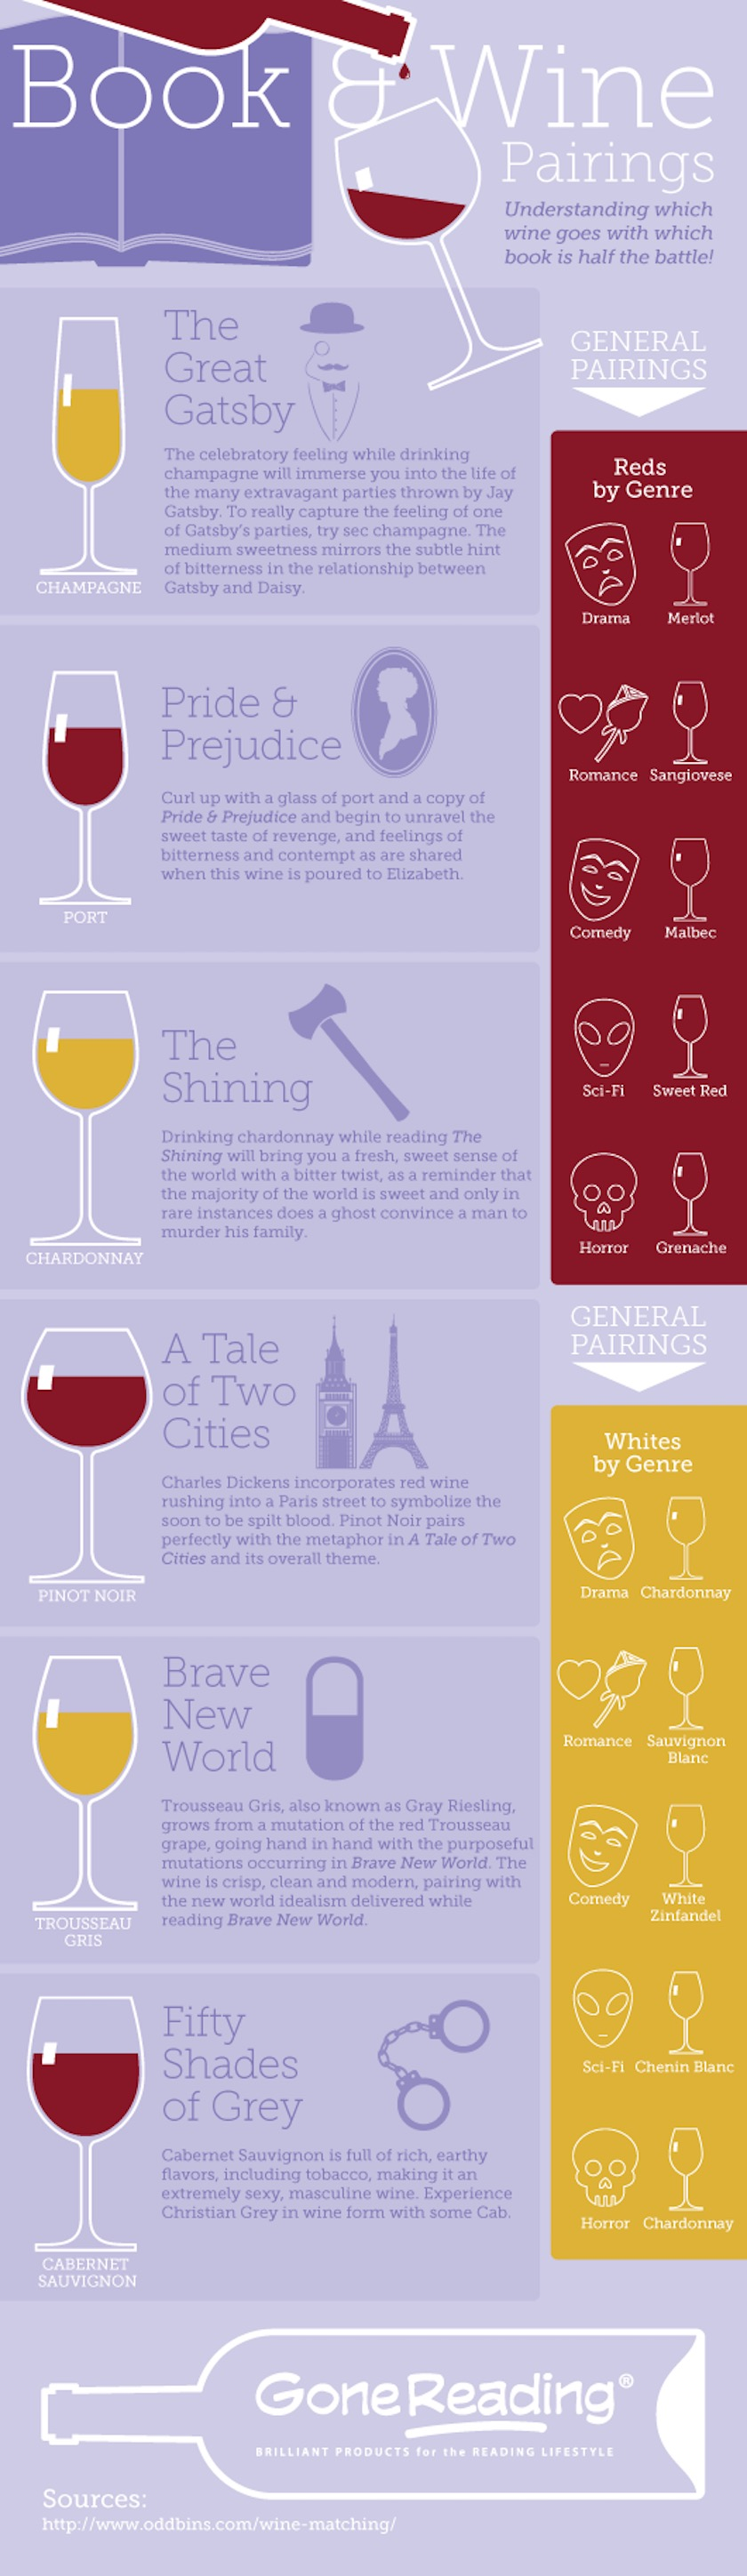 Book and wine pairings - infographic